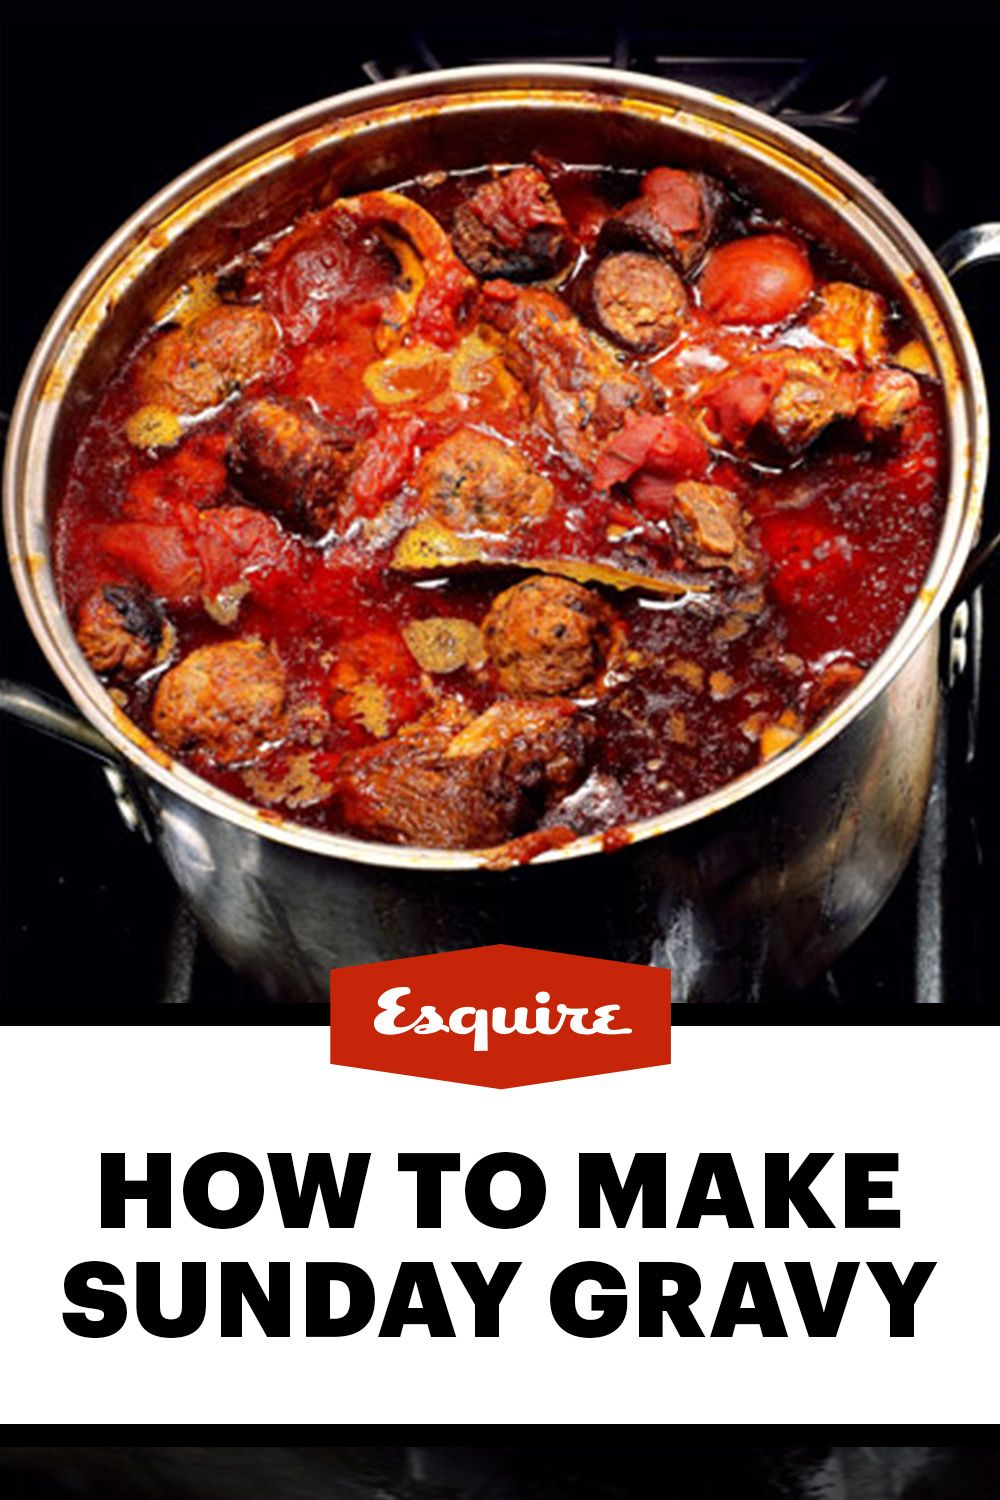 A sacred pasta sauce recipe for a sacred day born in the kitchen of an  Italian-American family.